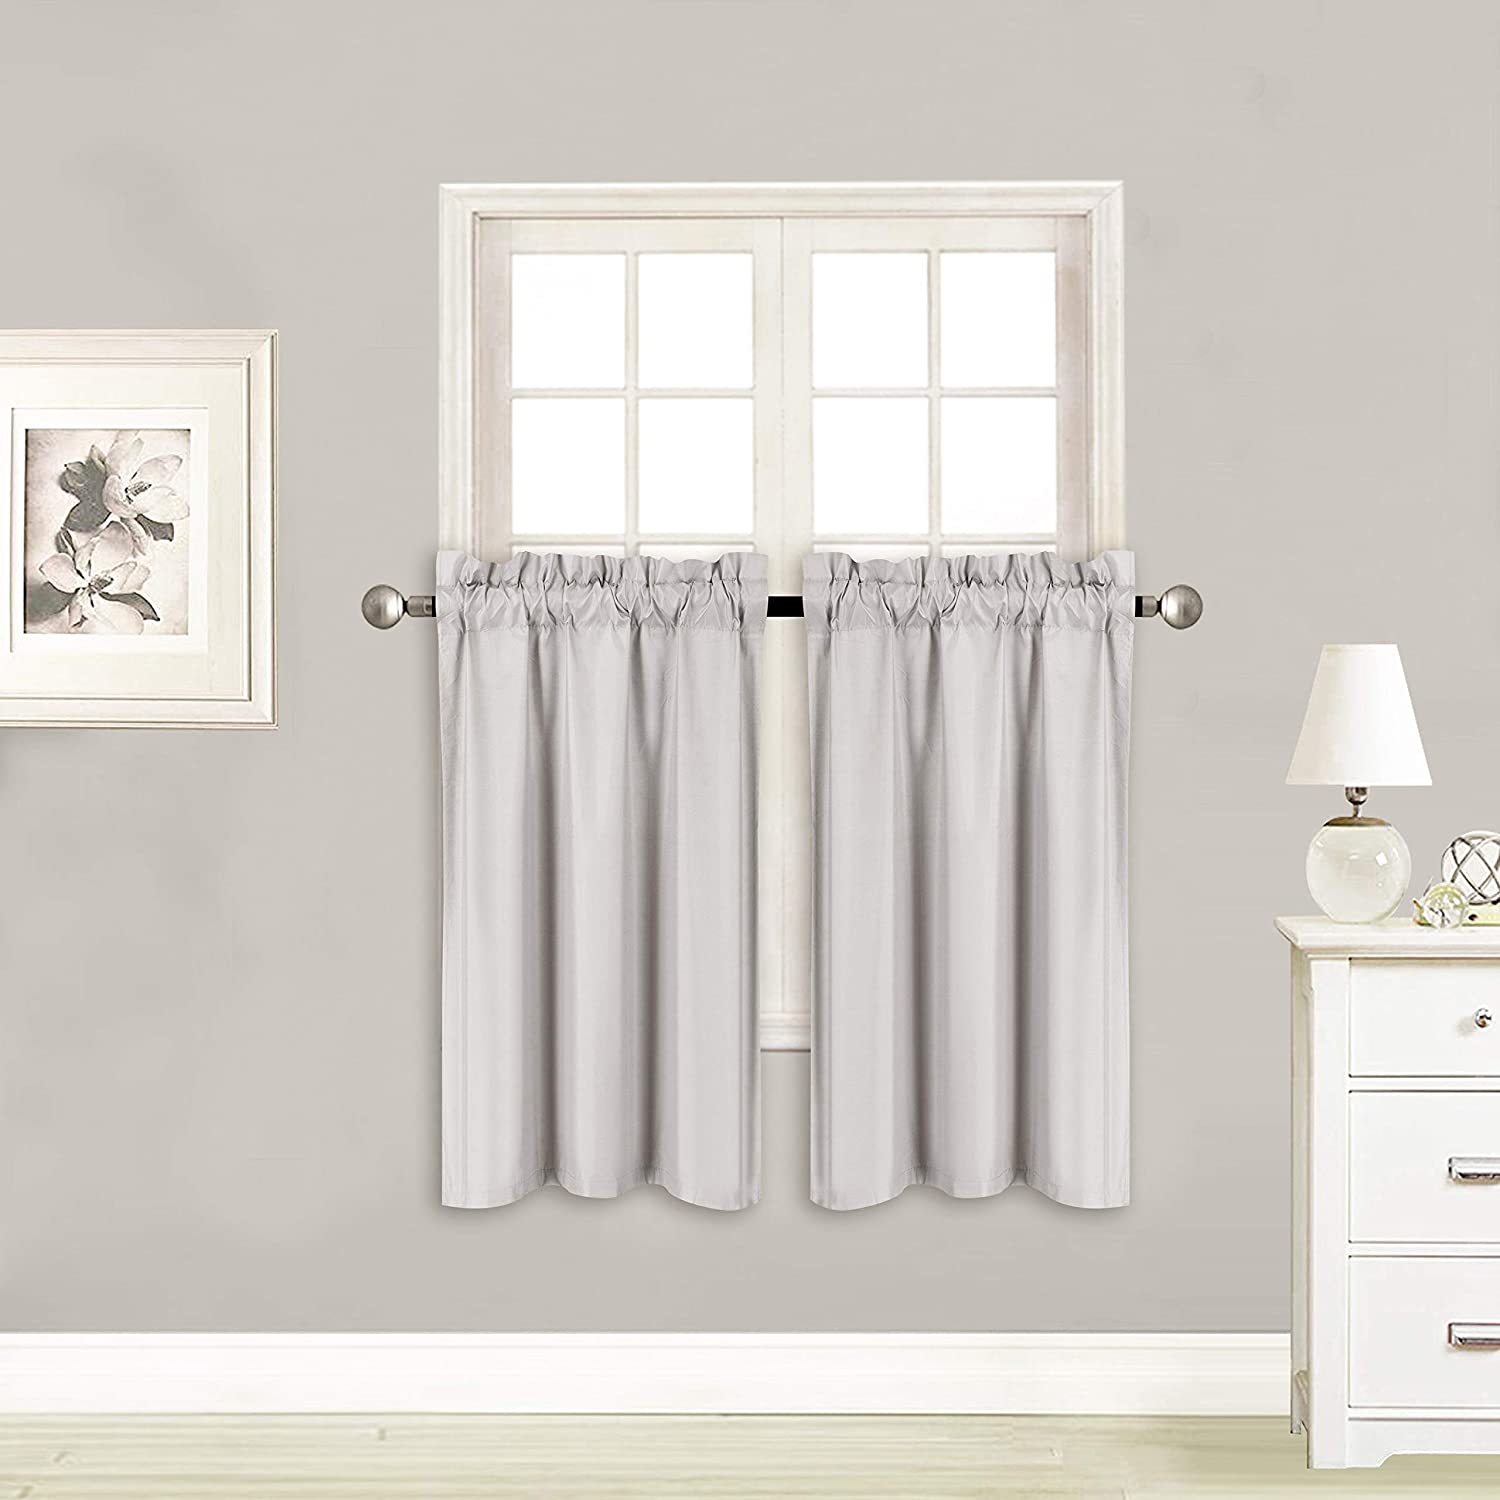 """Elegant Home 2 Panels Tiers Small Window Treatment Curtain Insulated Blackout Drape Short Panel 28"""" W X 36"""" L Each for Kitchen Bathroom or Any Small Window # R5 (Silver/Grey)"""